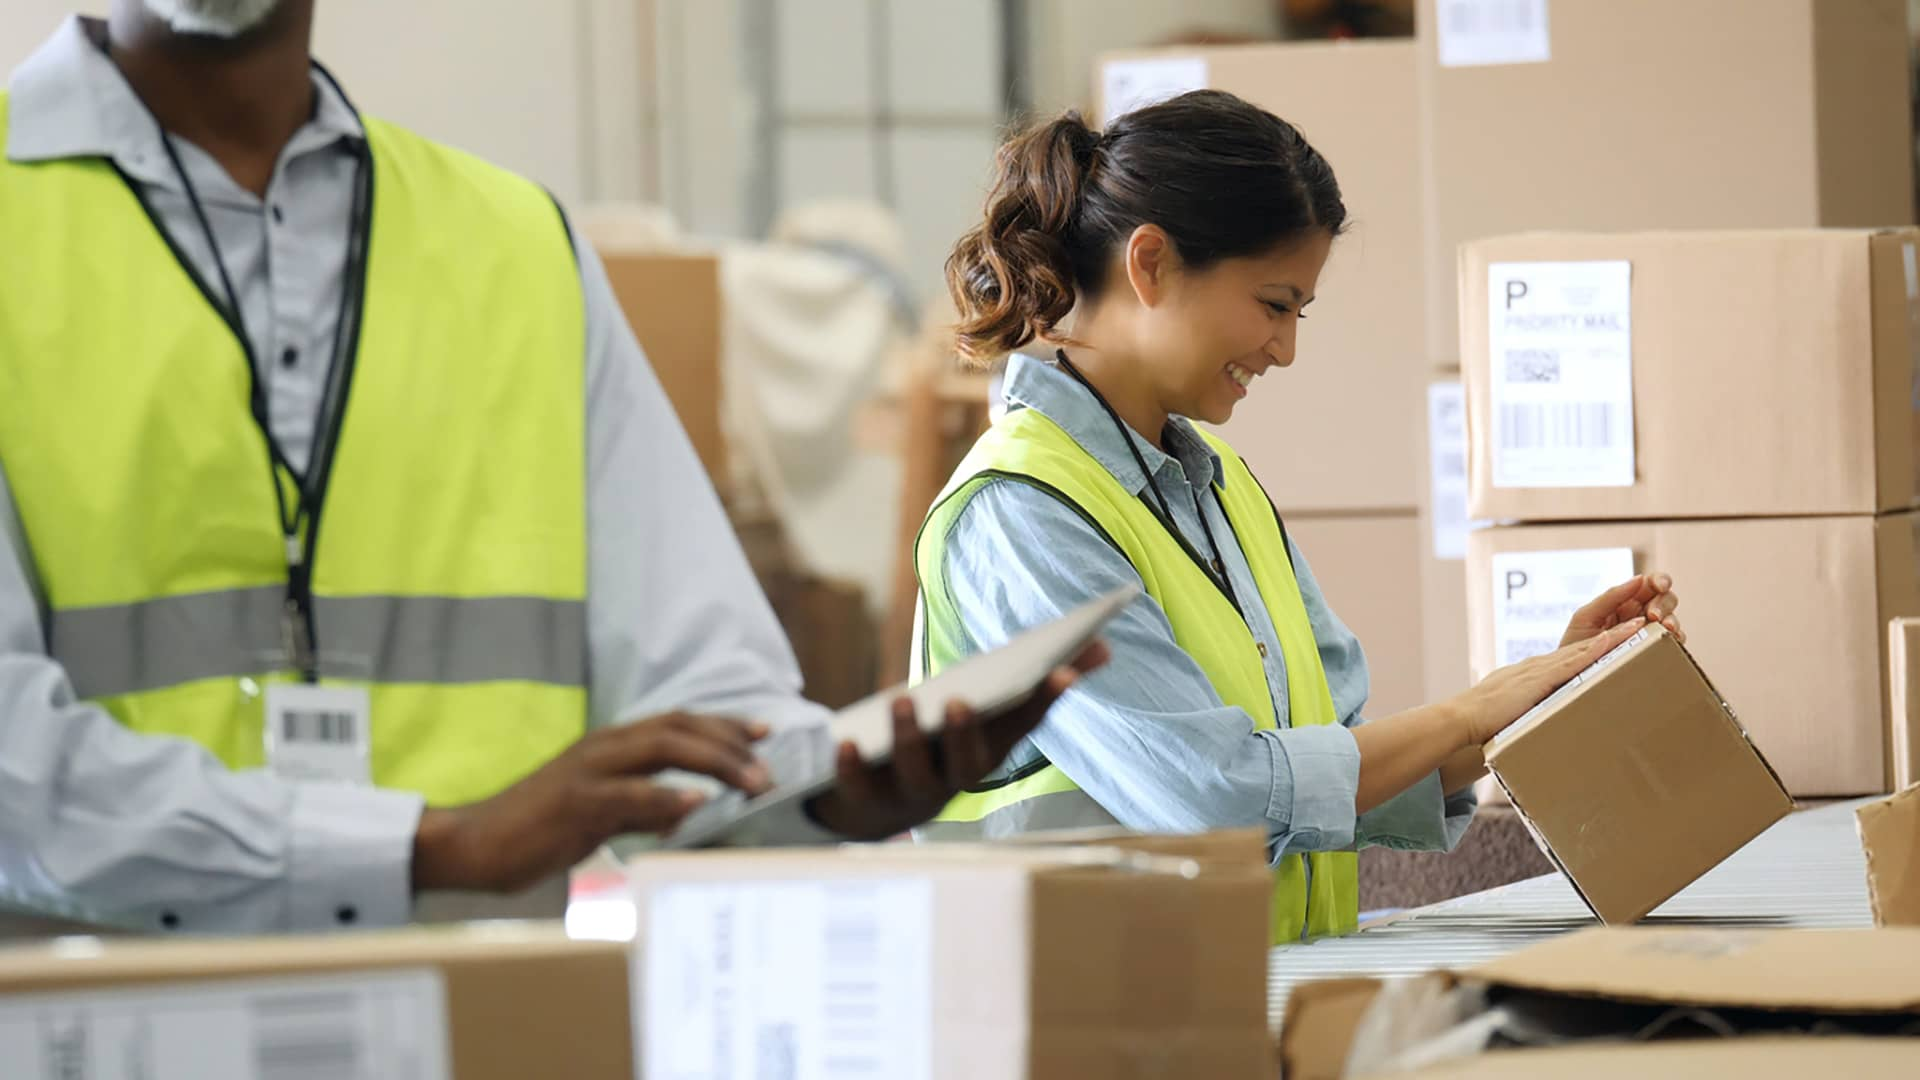 warehouse staff working with packages